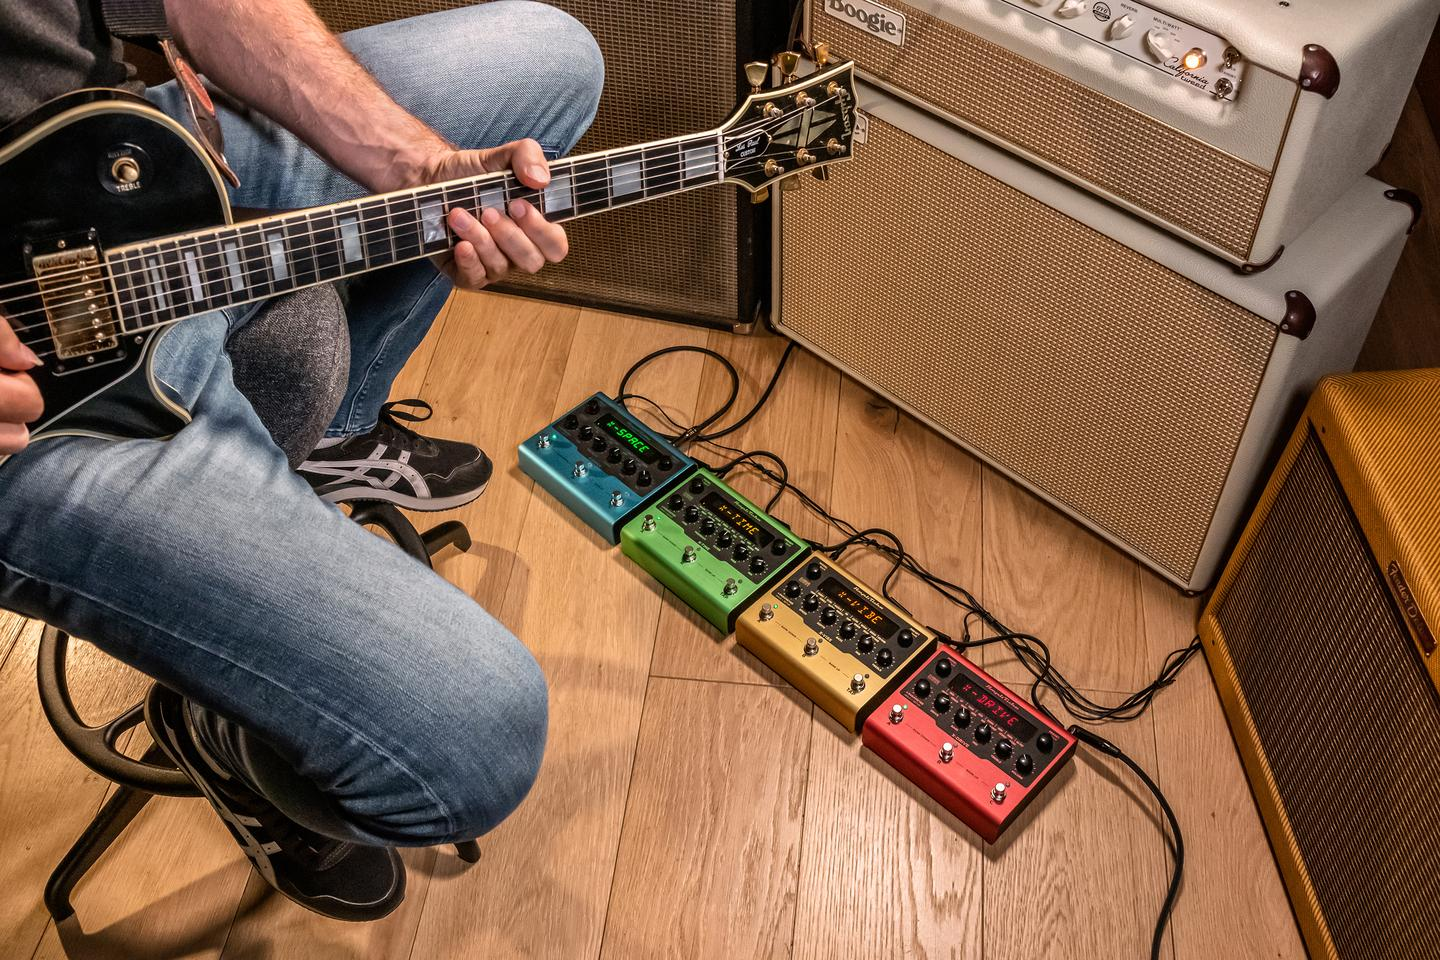 Each of the four X-Gear stomps is crammed with 16 custom algorithms based on the most popular models in IK's AmpliTube software